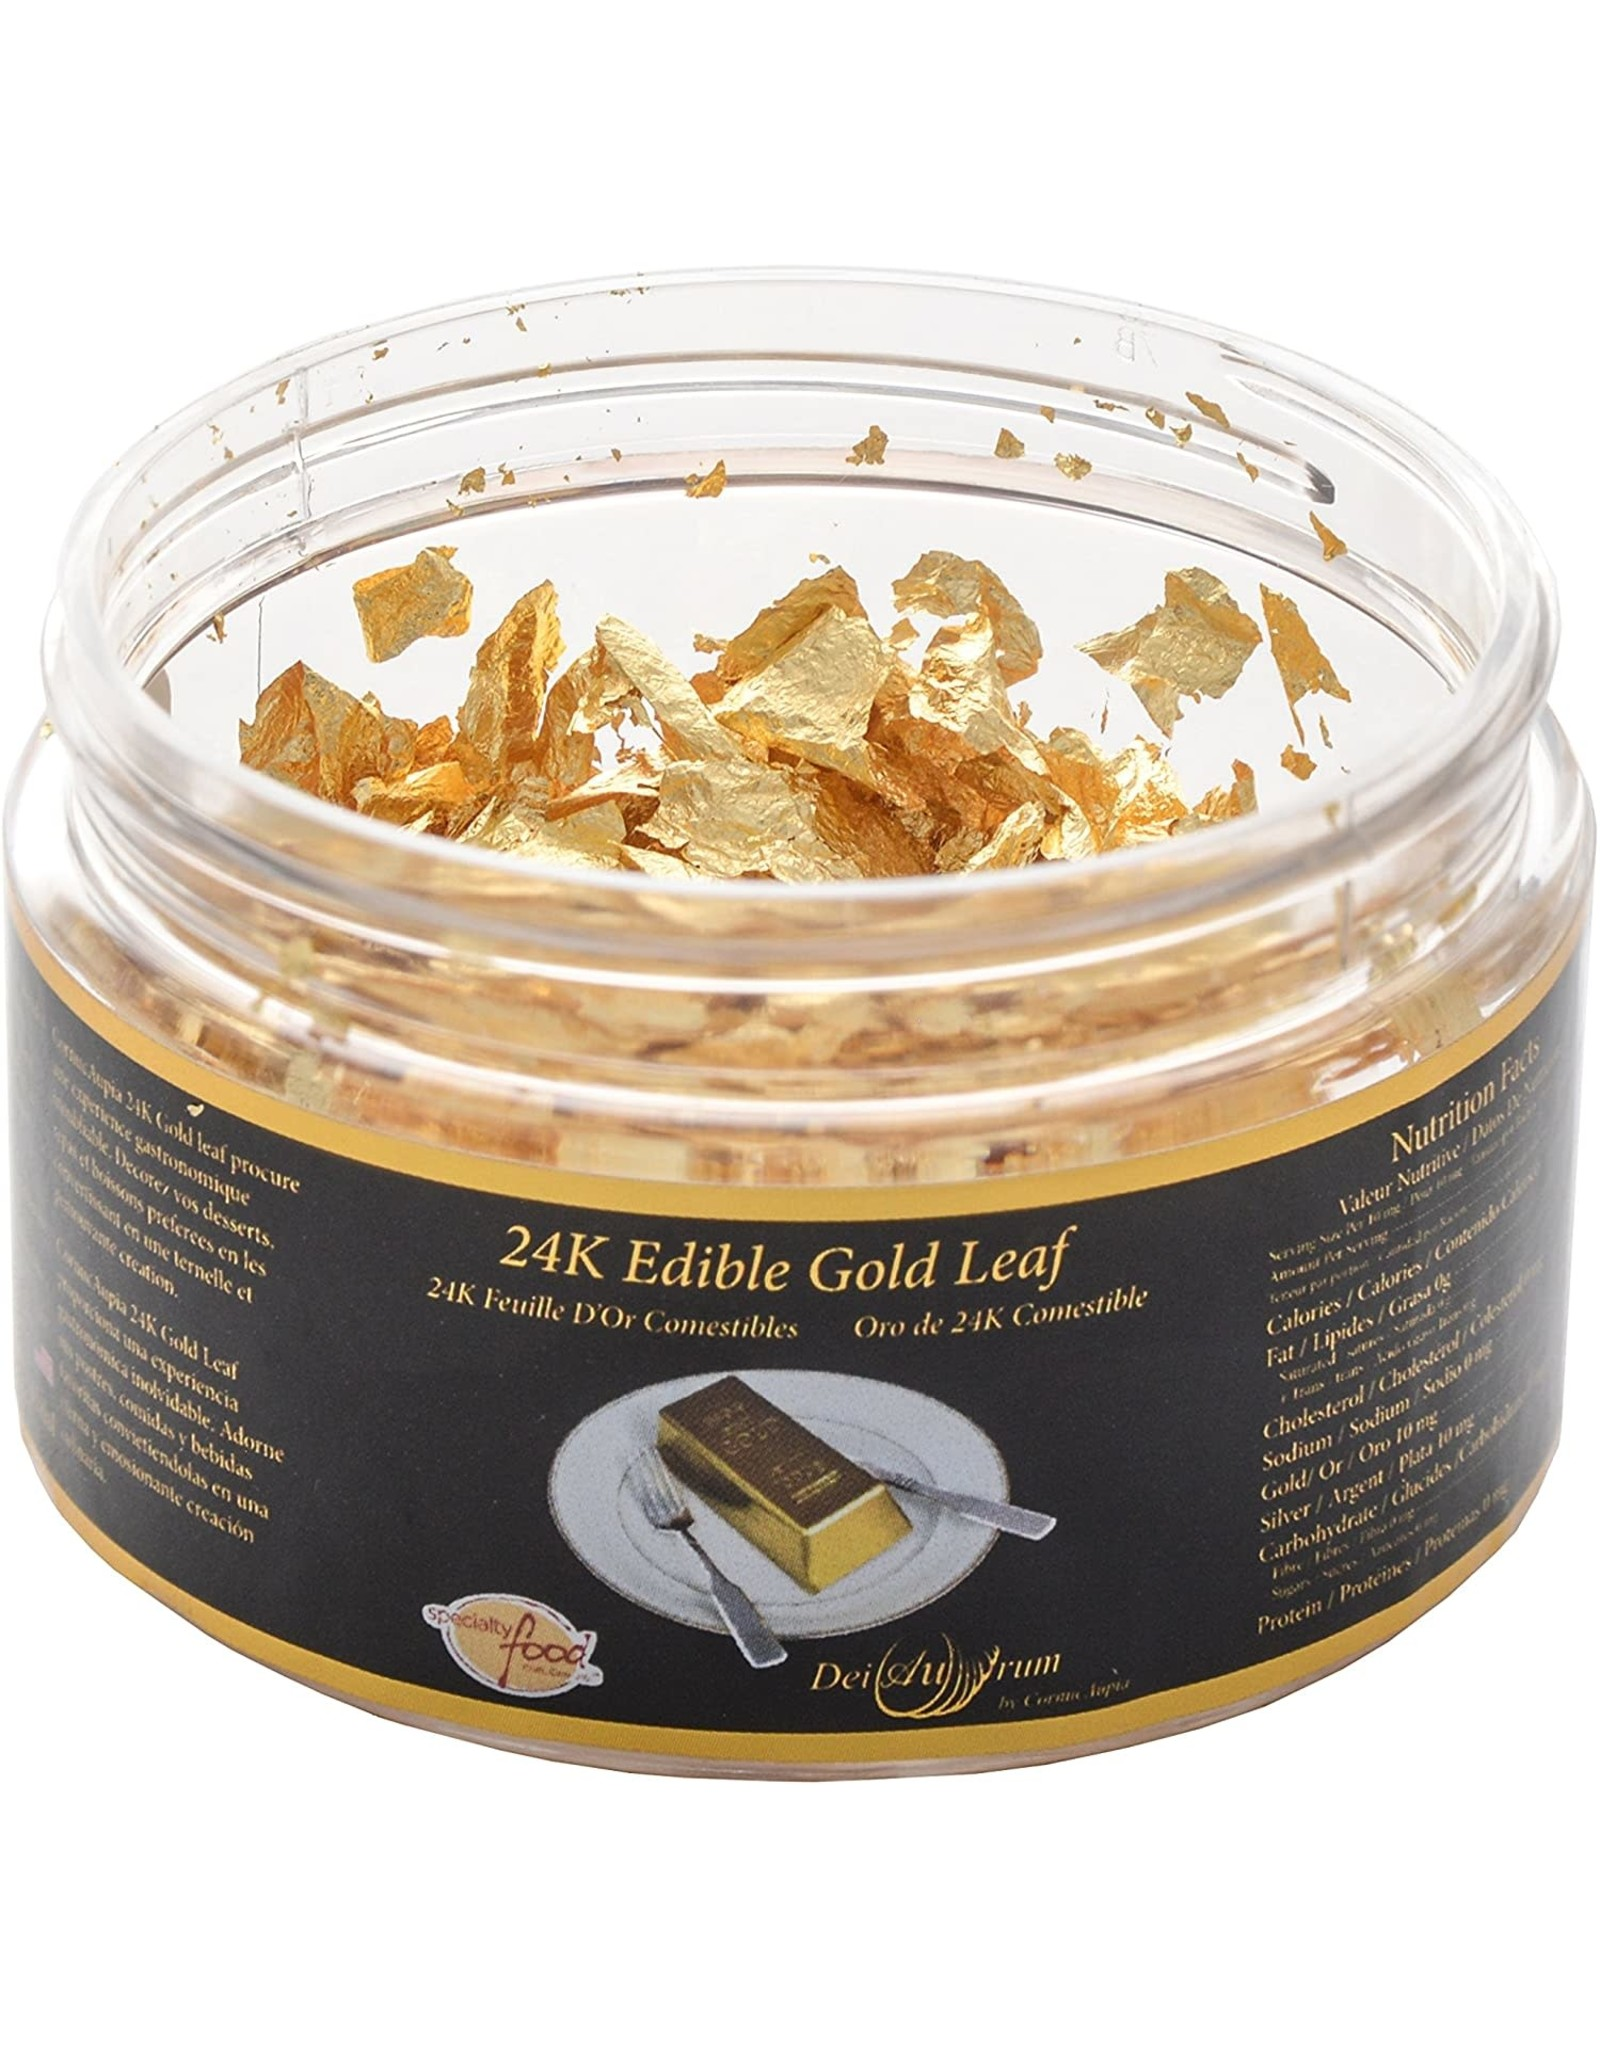 24K Edible Gold Leaf Flakes Jar - 0.100g